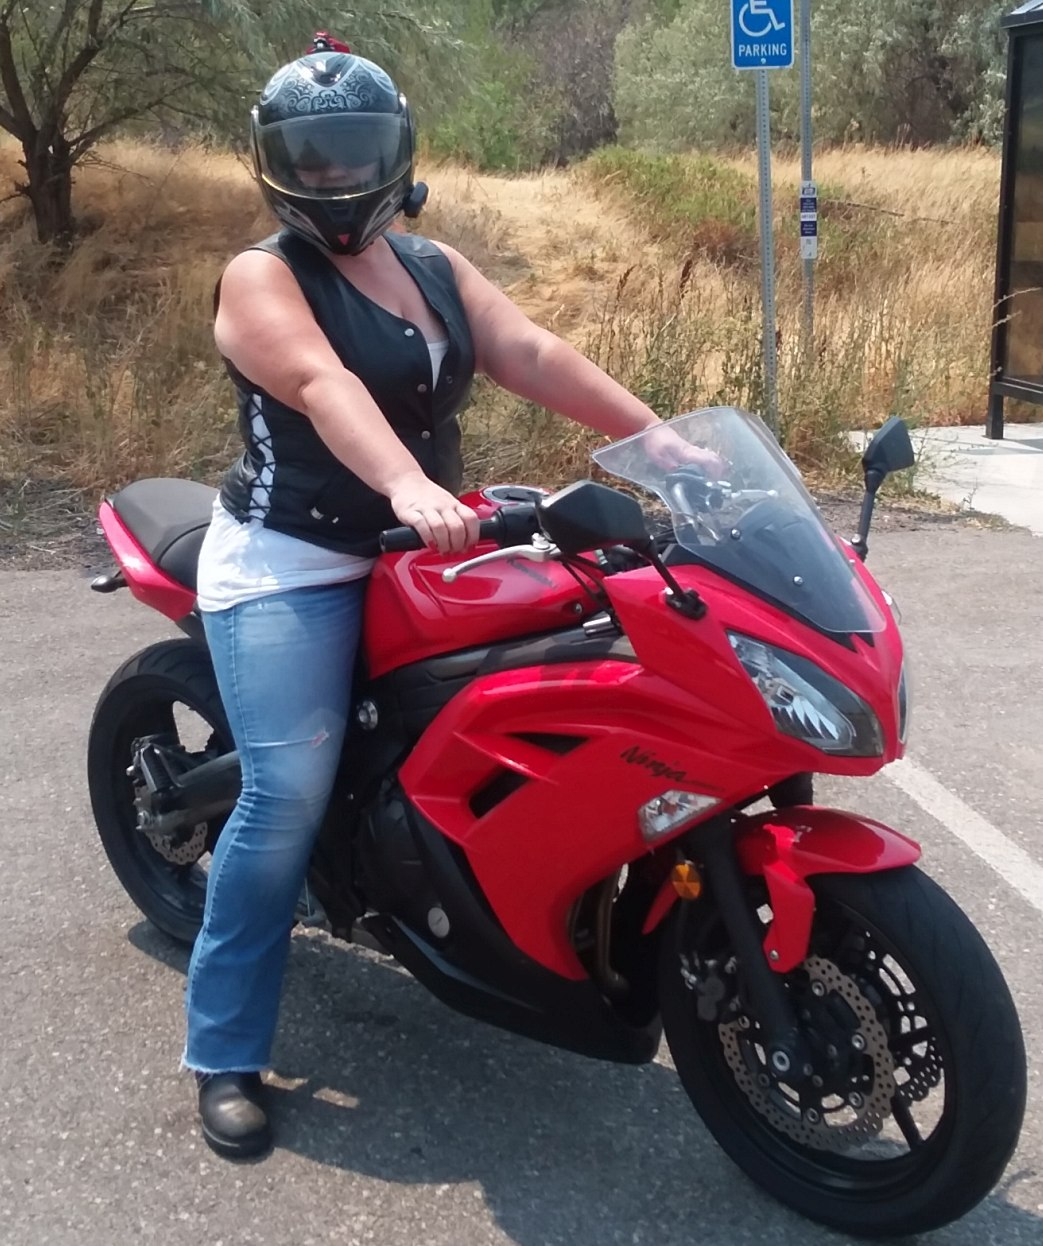 A helmeted woman sits astride a red Kawasaki Ninja 650. Her arms are extended to hold the controls of the bike, and her feet are planted firmly on the ground. She wears black boots, blue jeans, a white tank top and a black leather vest. The vest is partially unsnapped at the neckline to show the white top beneath. In the background, dry grass and scattered trees and a public bus stop.